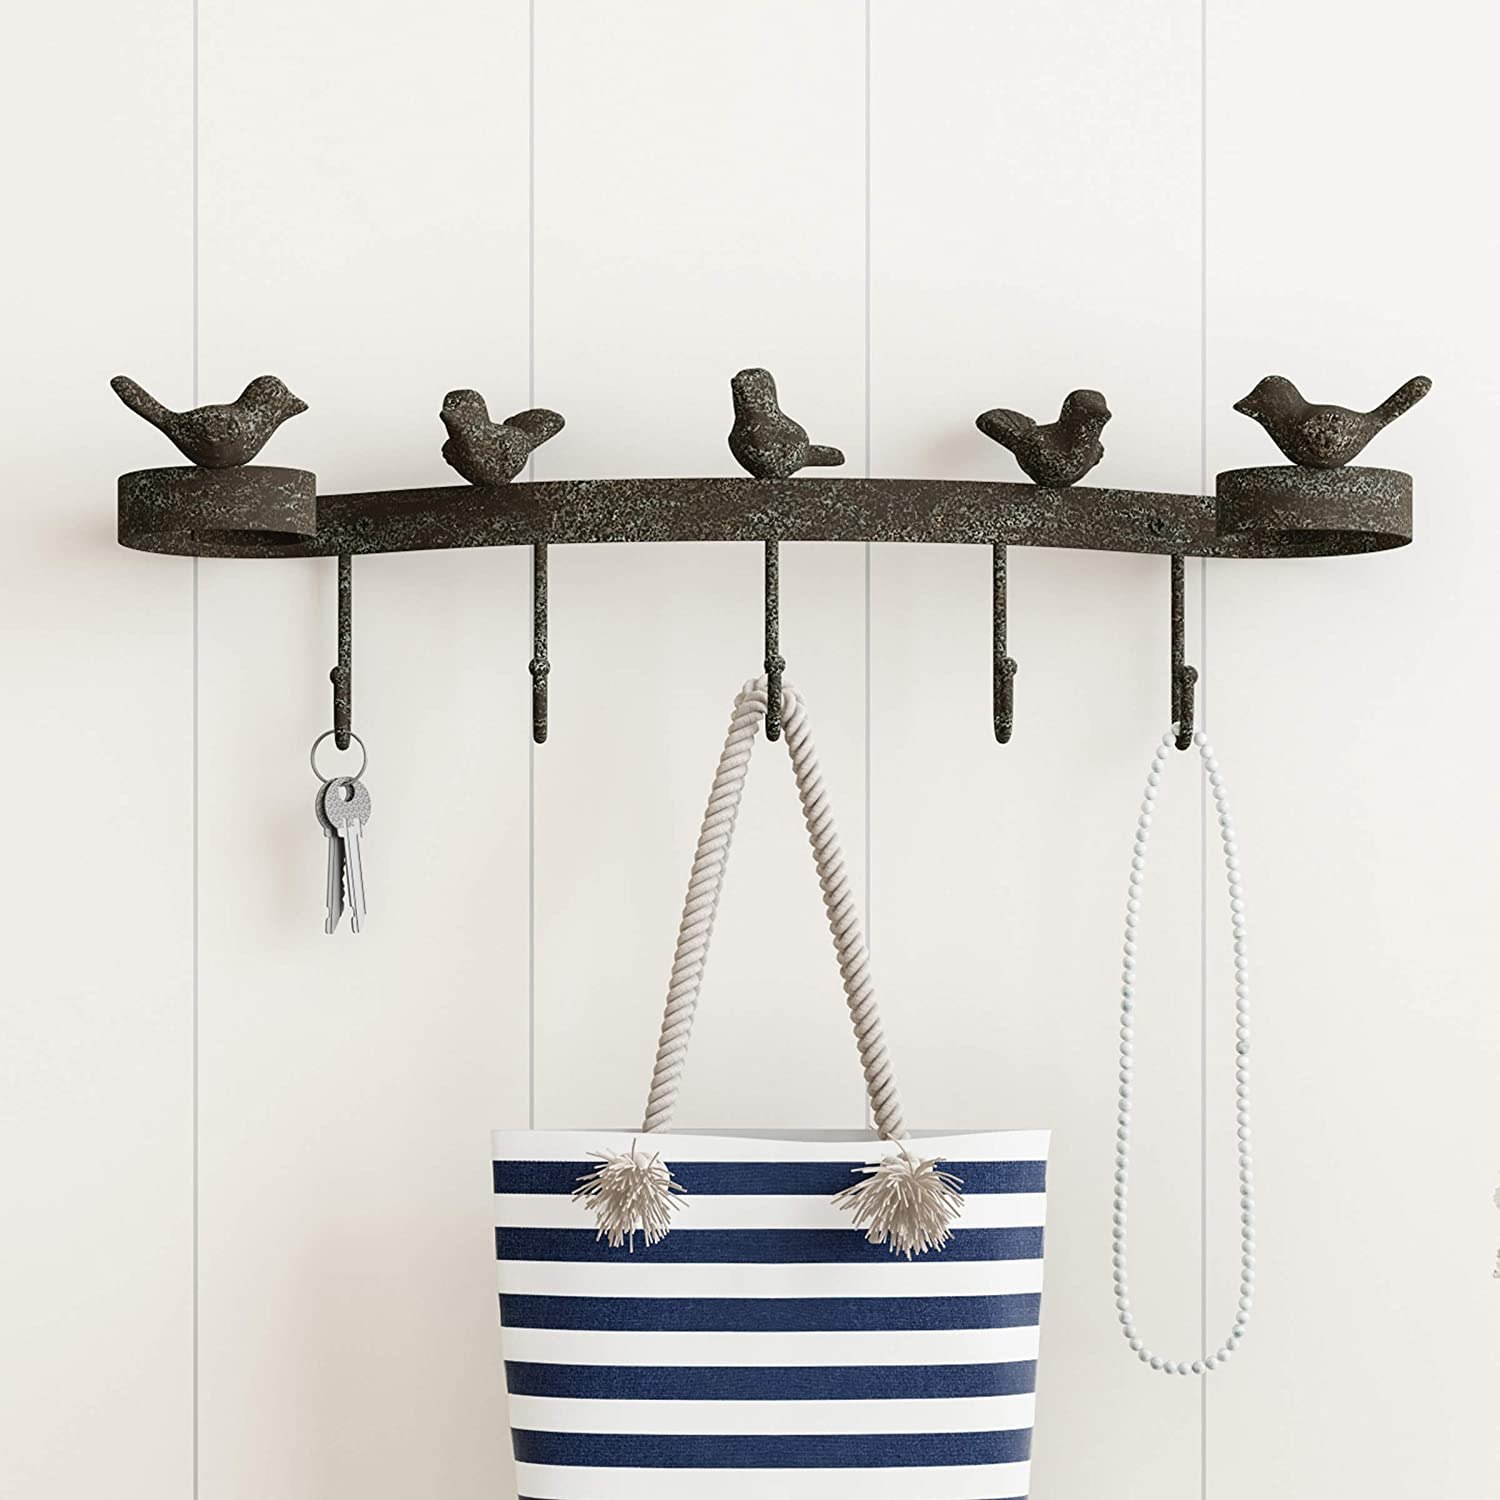 Lavish Home Decorative Birds on Ribbon Cast Iron Shabby Chic Rustic Wall Mount Hooks for Coats, Towels, Hats, Scarves, Jewelry, and More